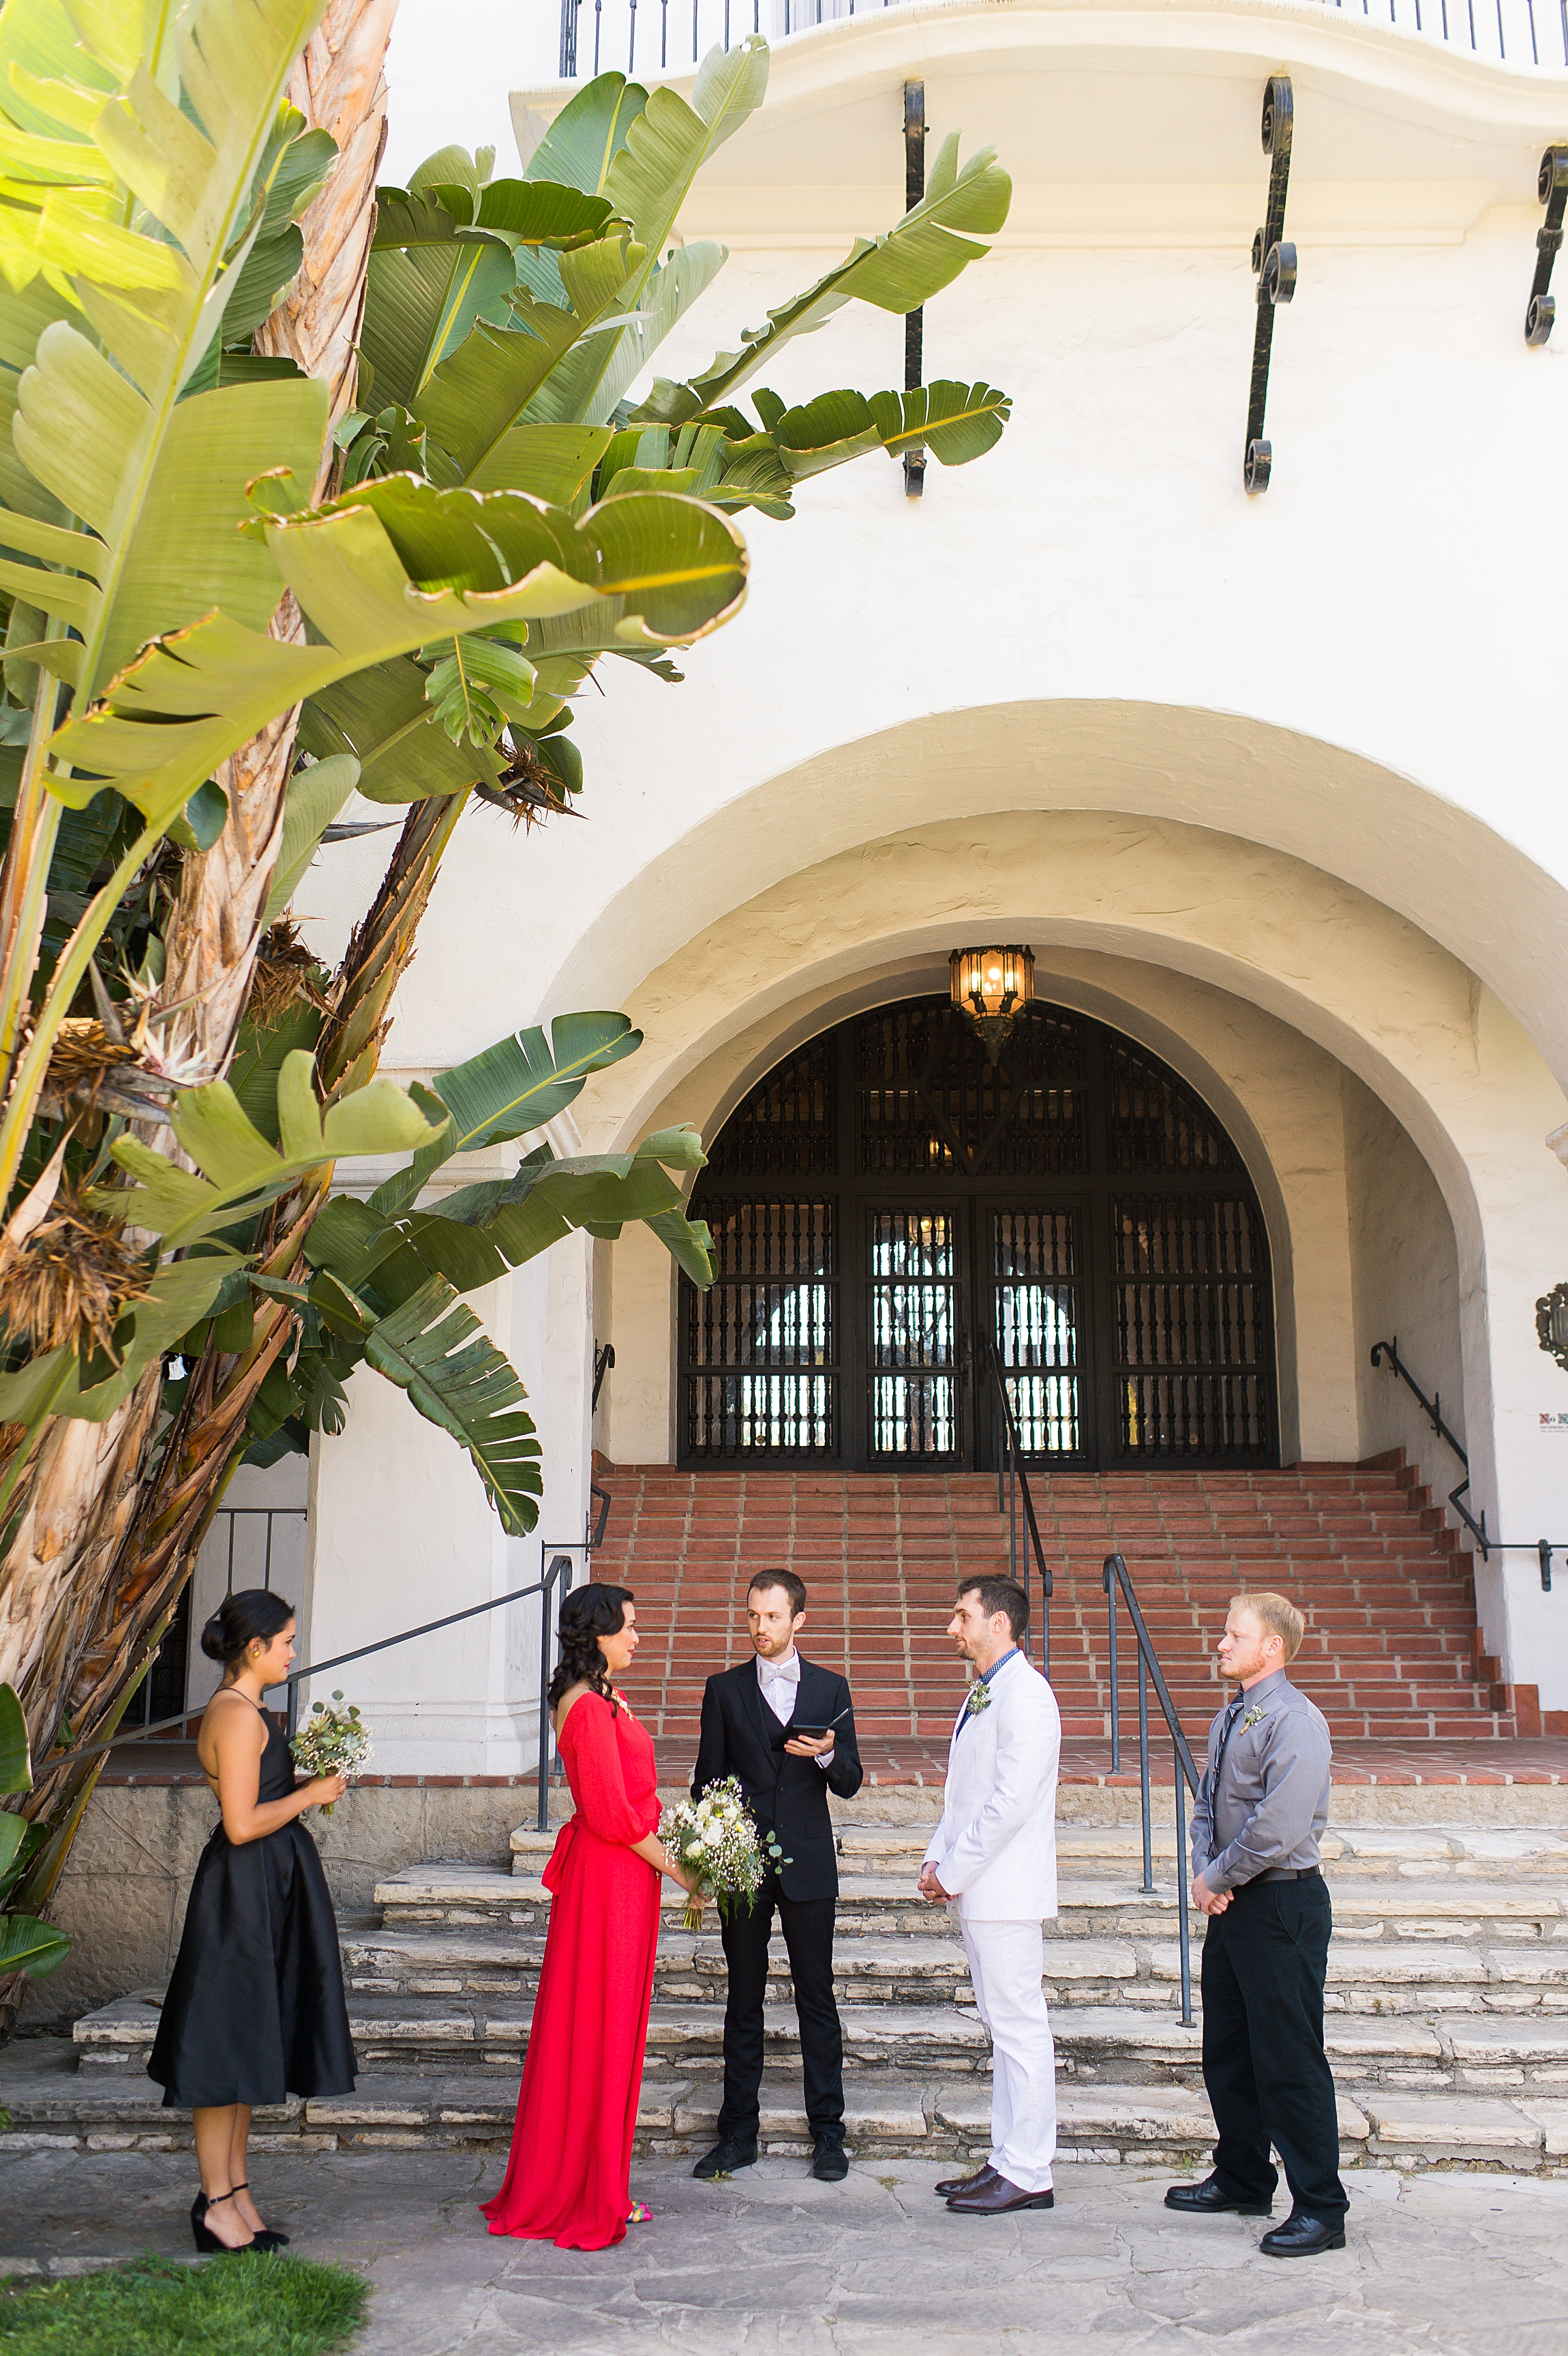 20160623-santa-barbara-courthouse_0009